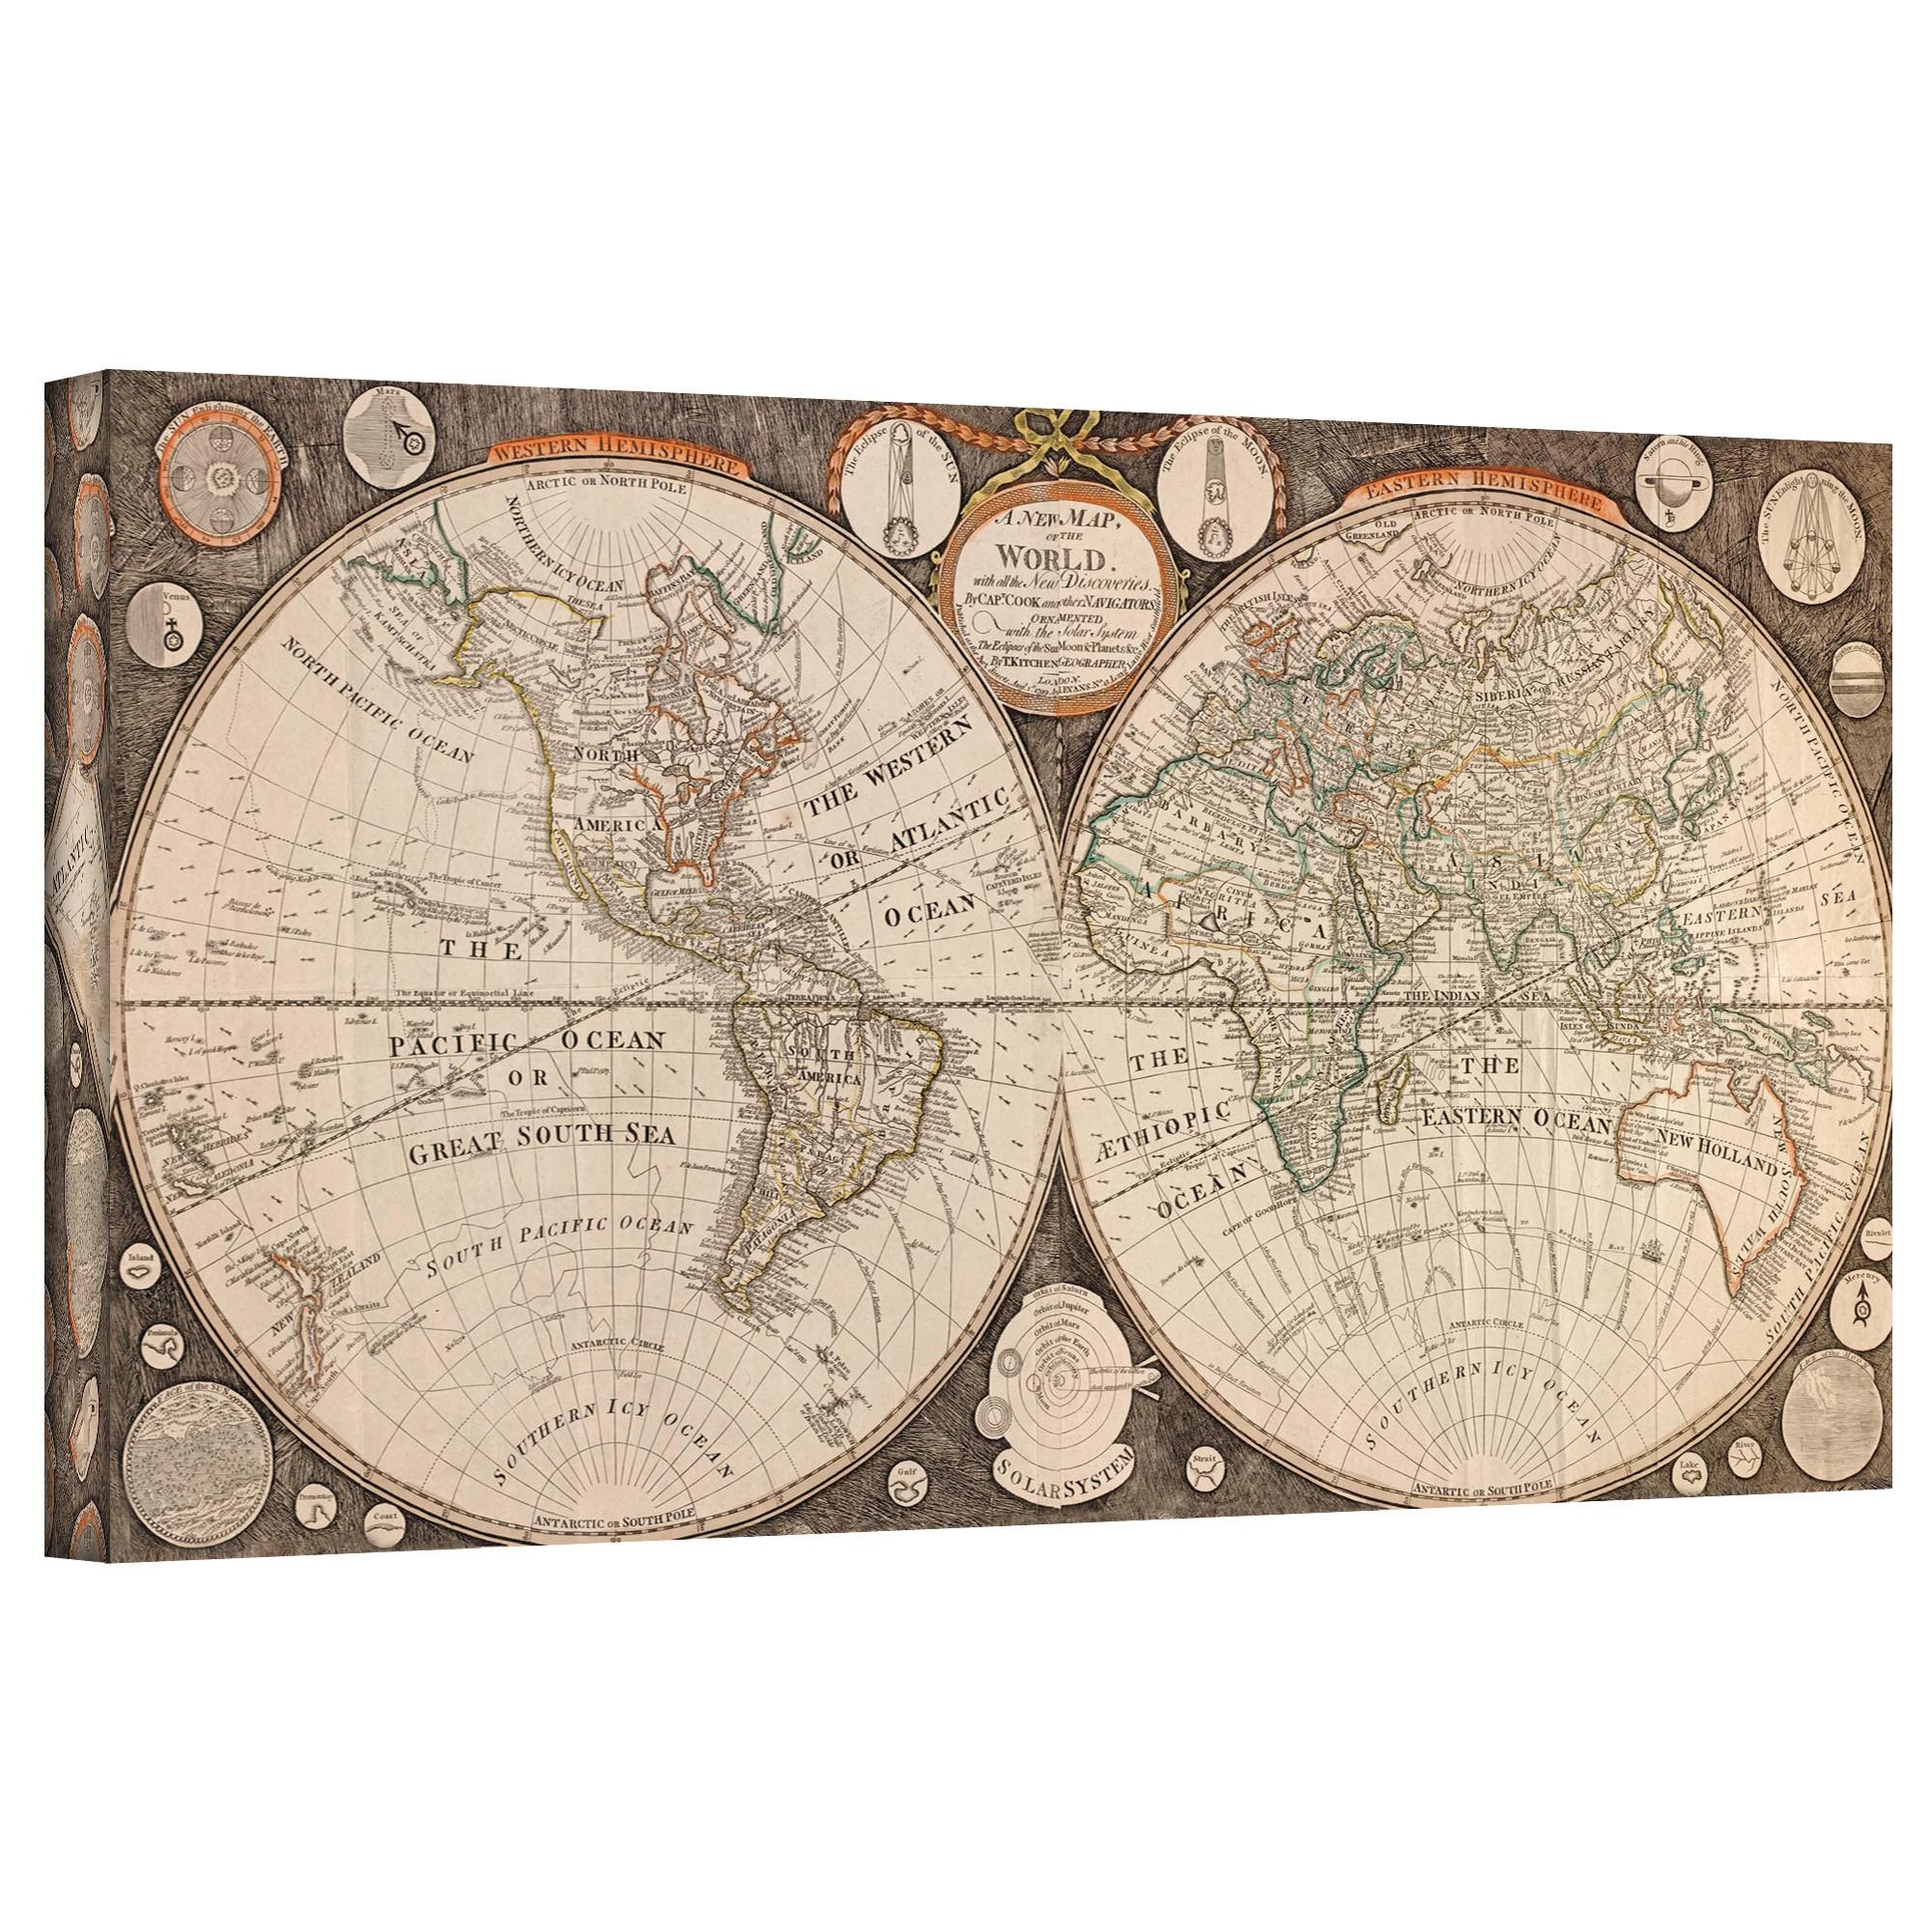 Wall Art Designs: Wonderful Home Decor Vintage Maps Wall Art With Old World Map Wall Art (Image 10 of 20)